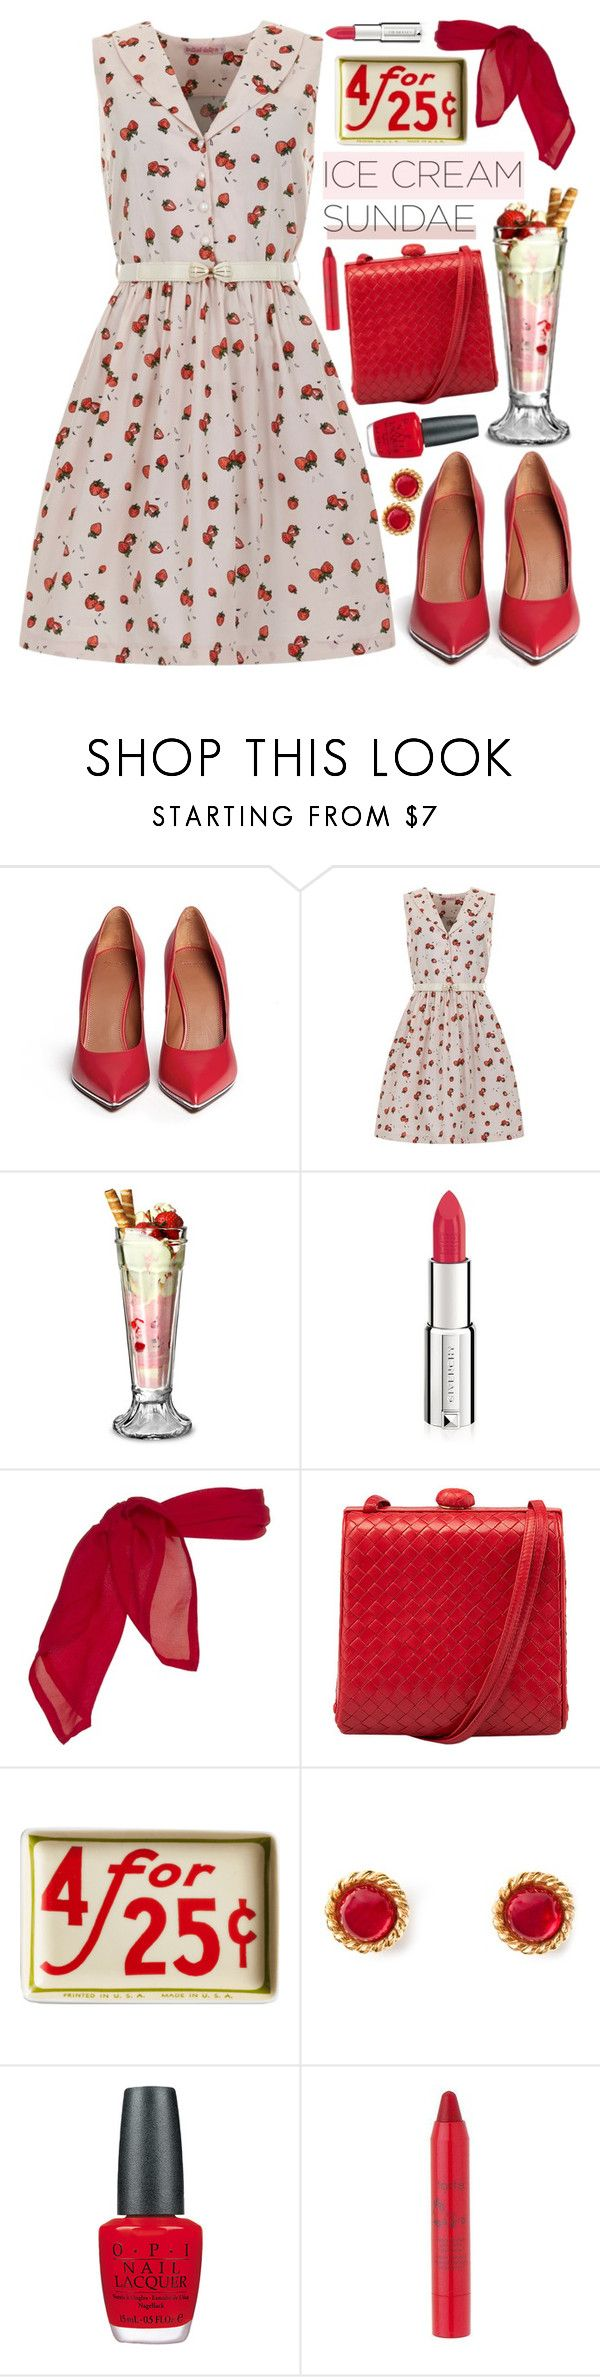 """""""Ice Cream Sundae"""" by chloe ❤ liked on Polyvore featuring Givenchy, Trollied Dolly, Knickerbocker, Rosanna, Chanel, OPI and tarte"""